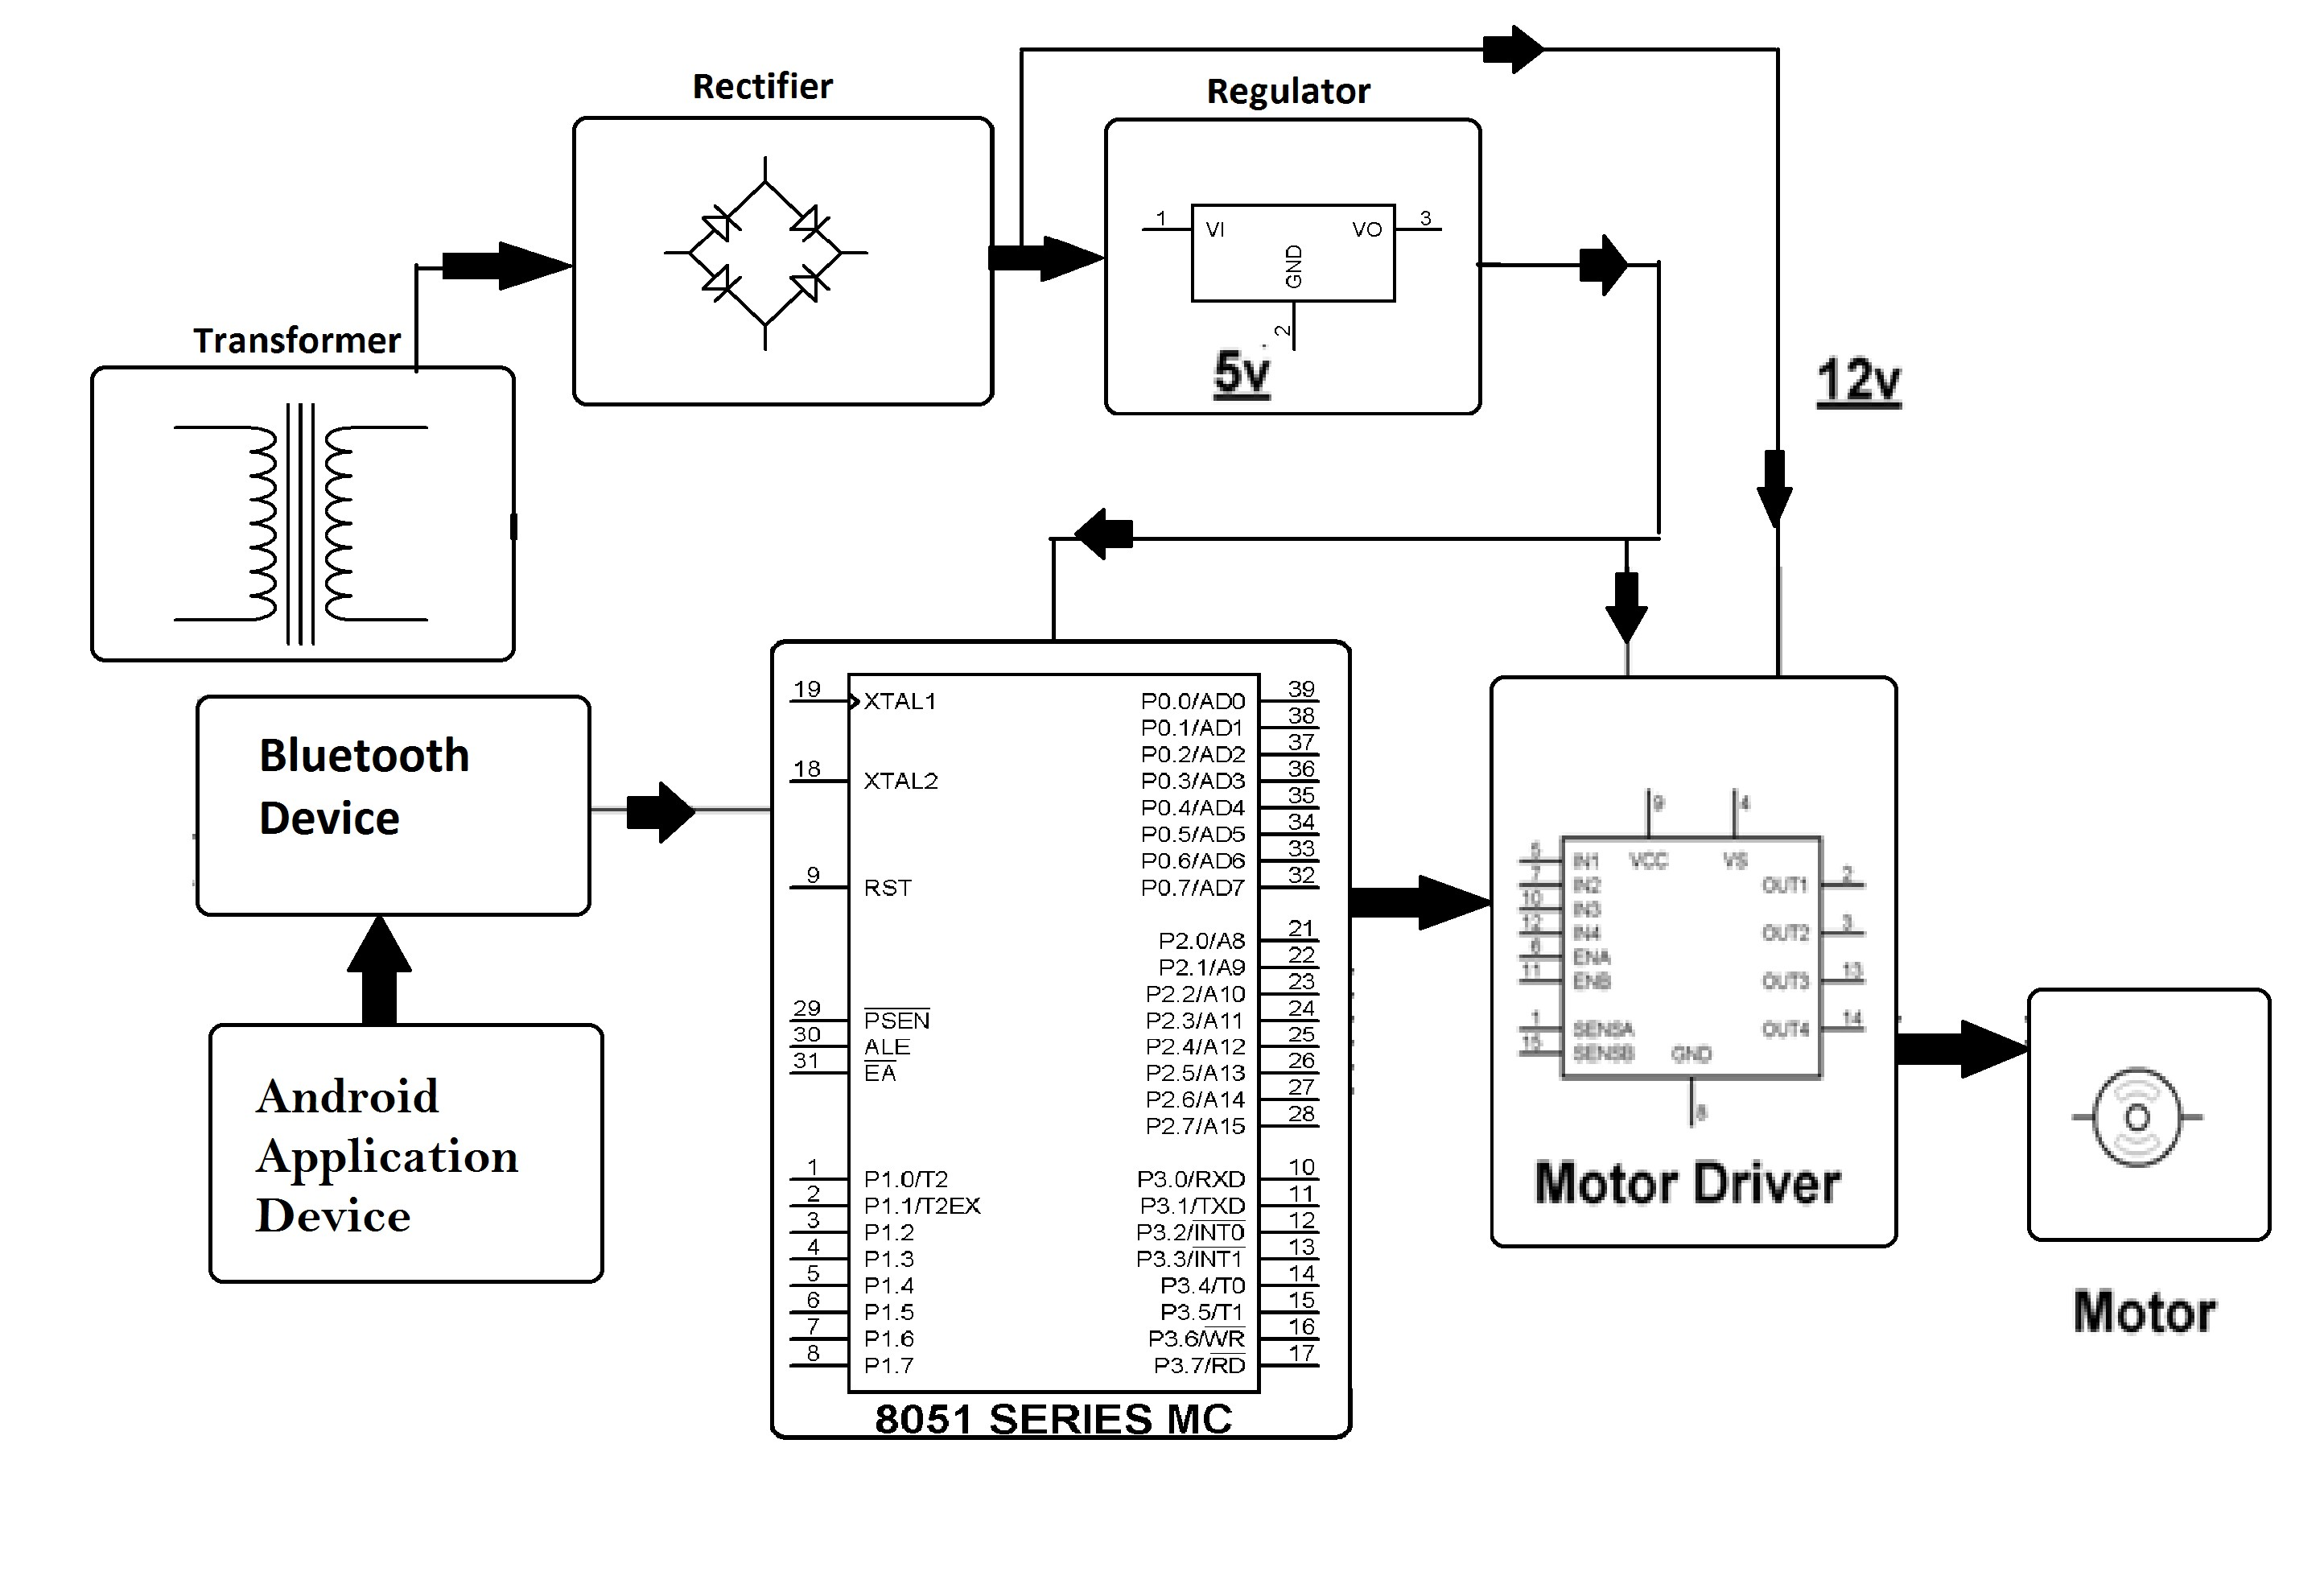 Mgb Gt Wiring Diagram Library Electric Fan Furthermore Motor Control Panel Alexs Mg British Motoring Better Image Original Of